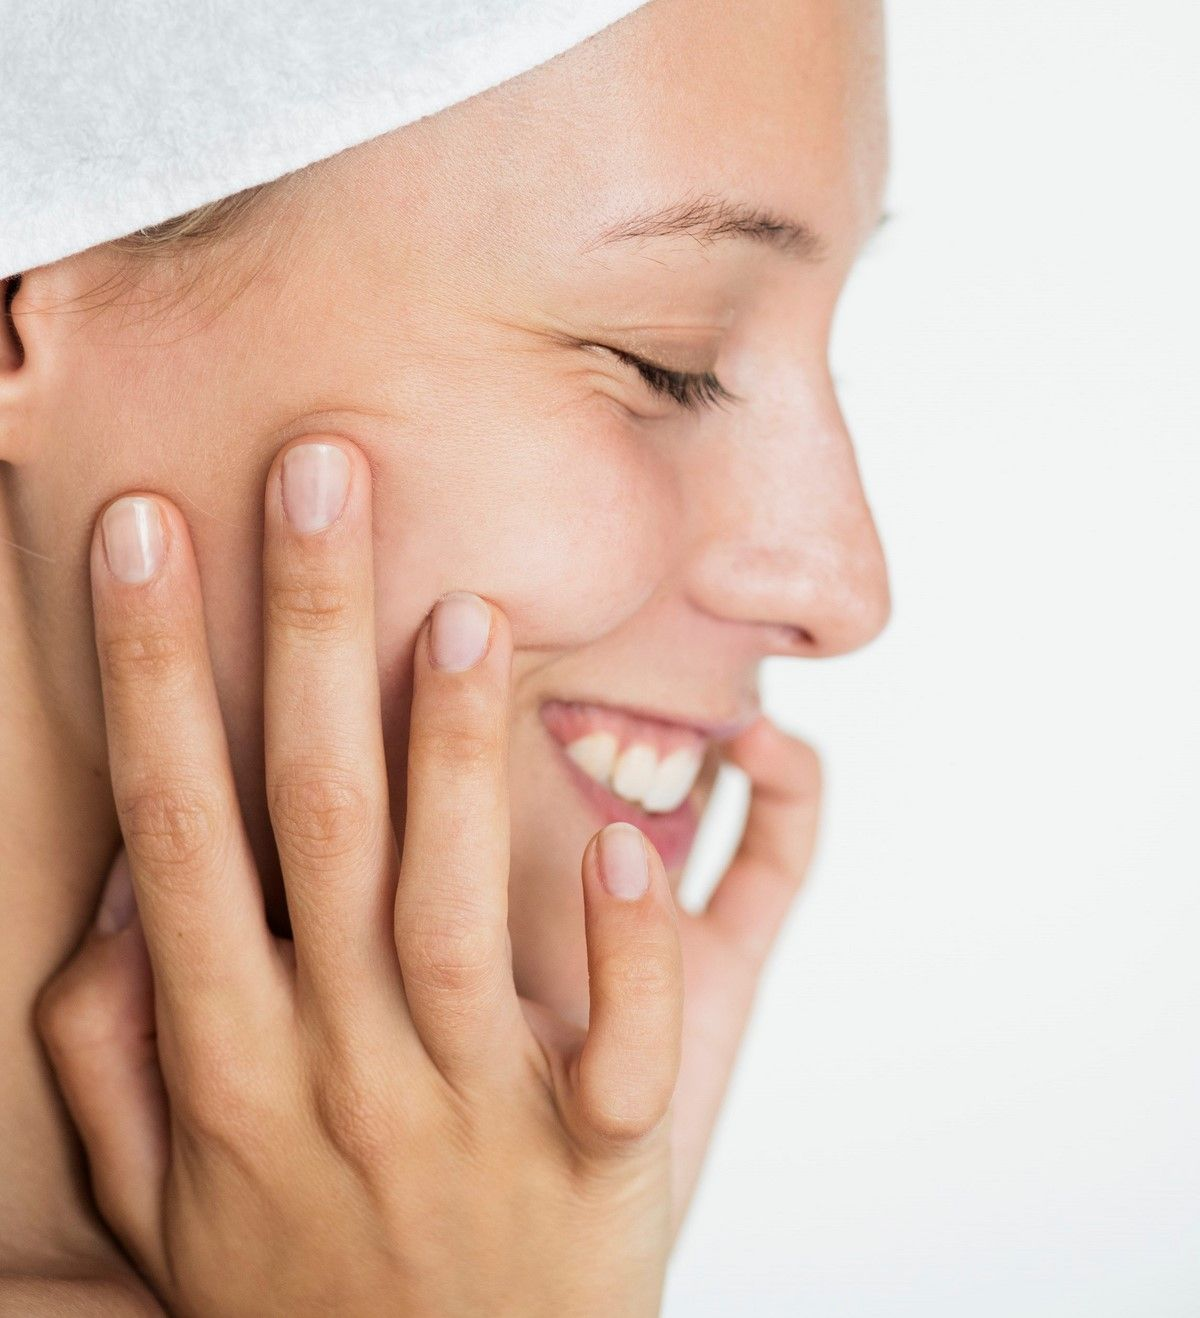 how to treat brittle nails at home with household remedies